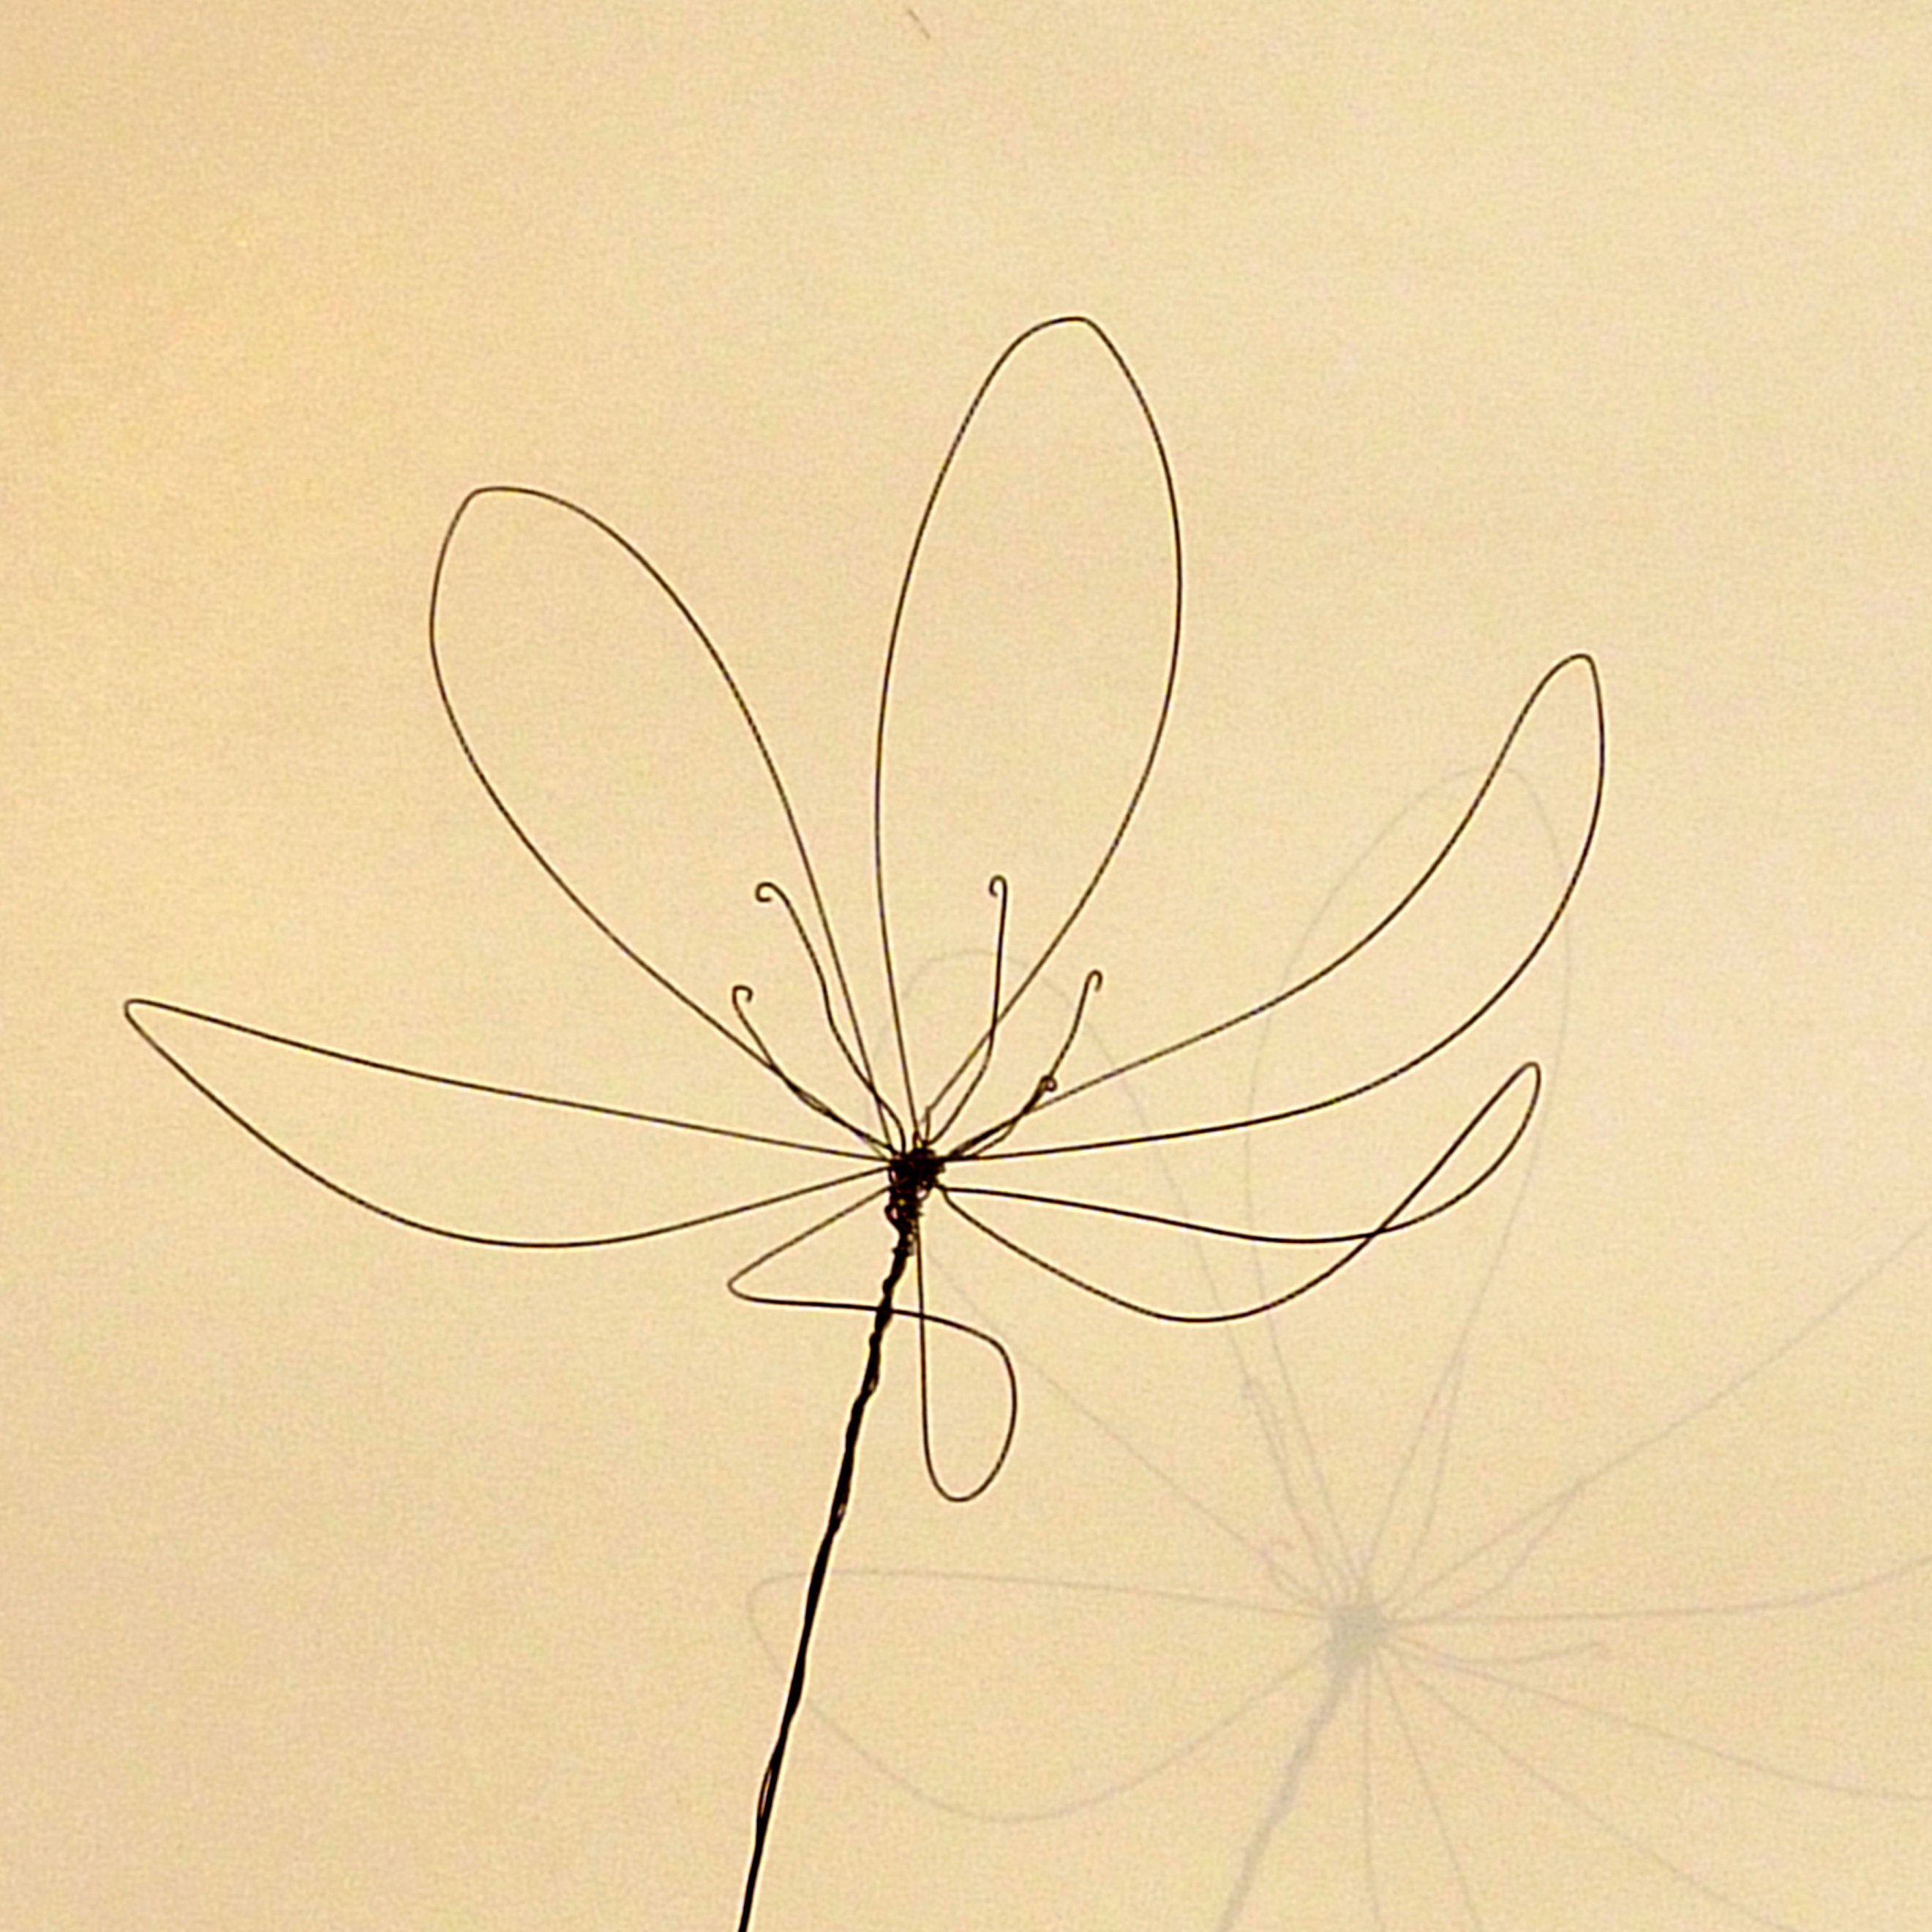 sculpture wire crab decoration wall wire art silhouette   Etsy